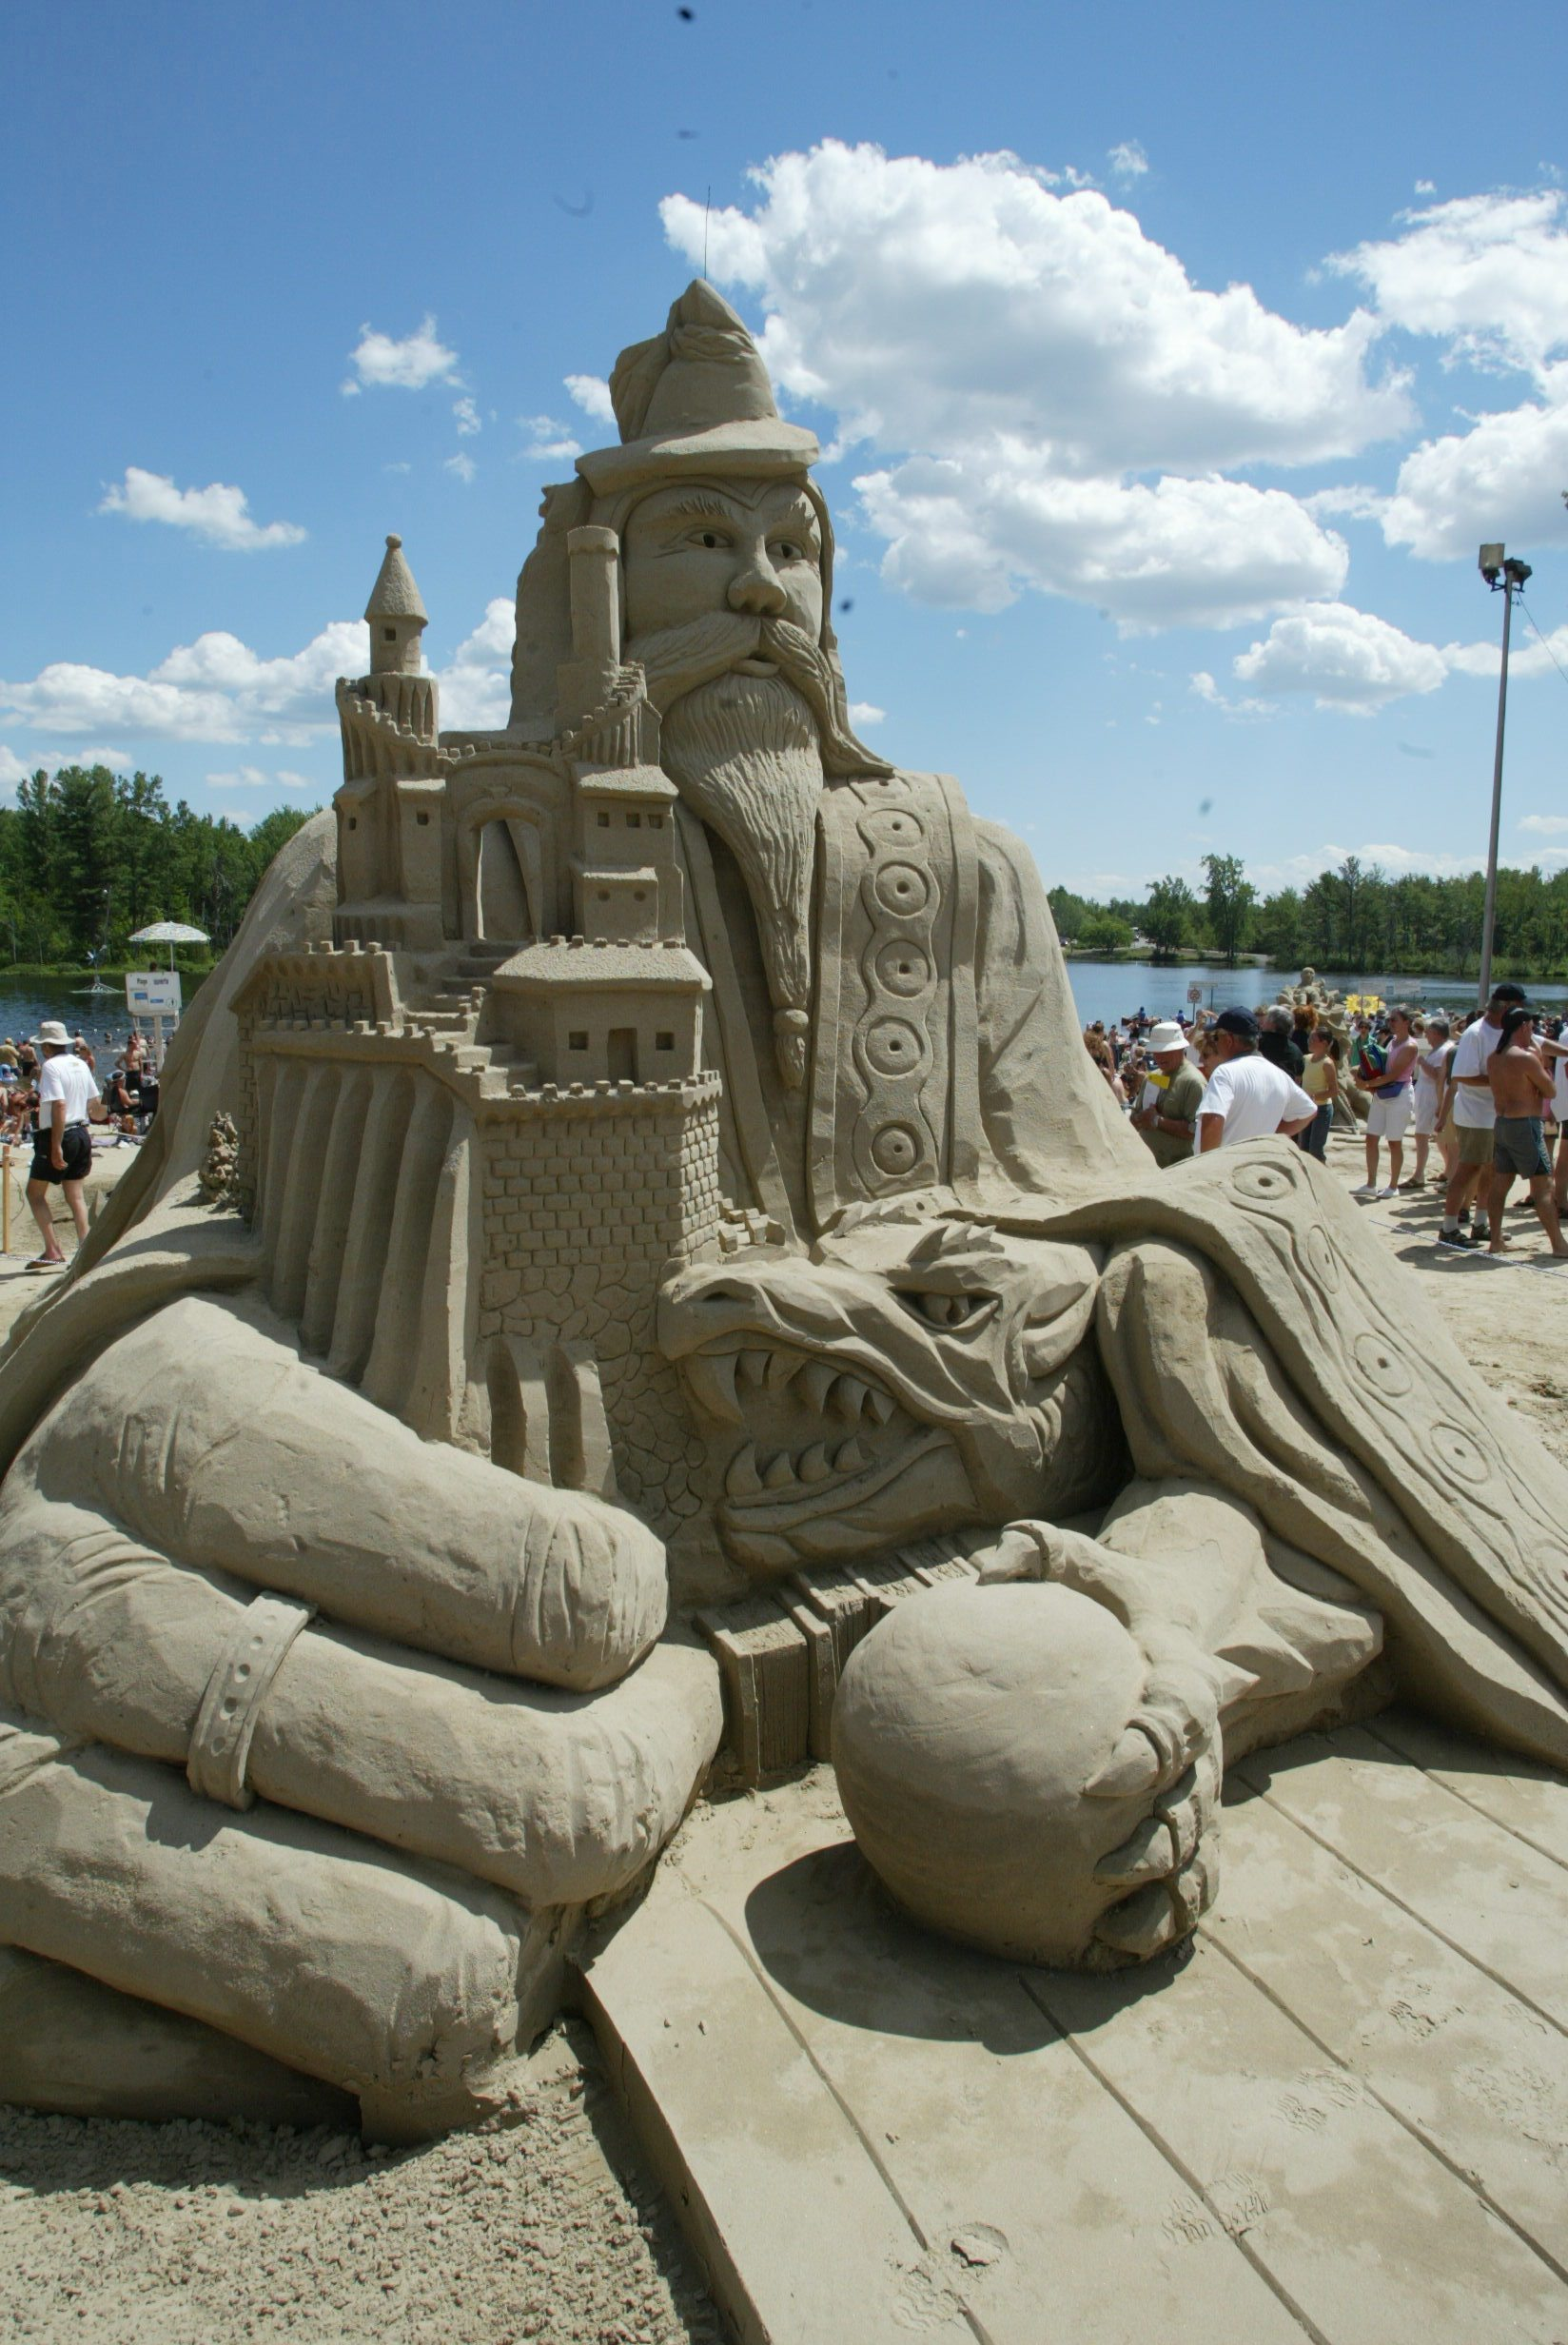 The Weekender: Gigantic sand castles, international babies, and four other ways to enjoy the long weekend